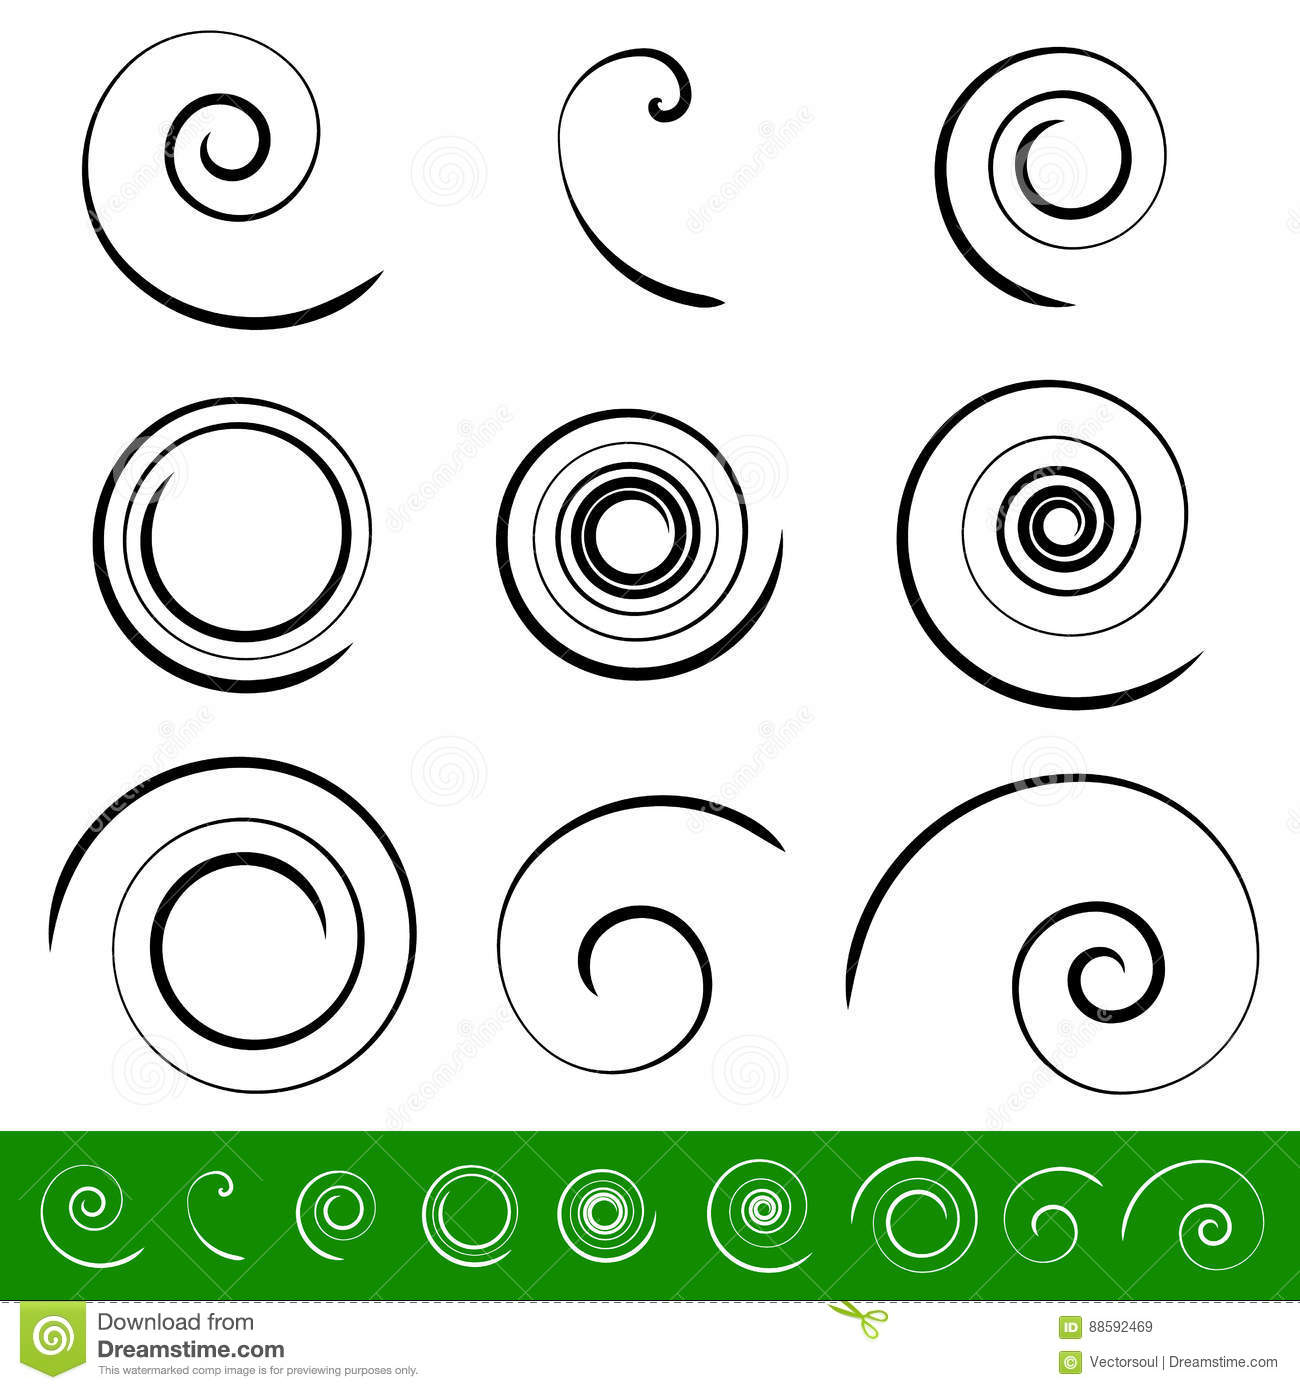 Spiral, vortex element set. 9 different circular shapes. Spiral